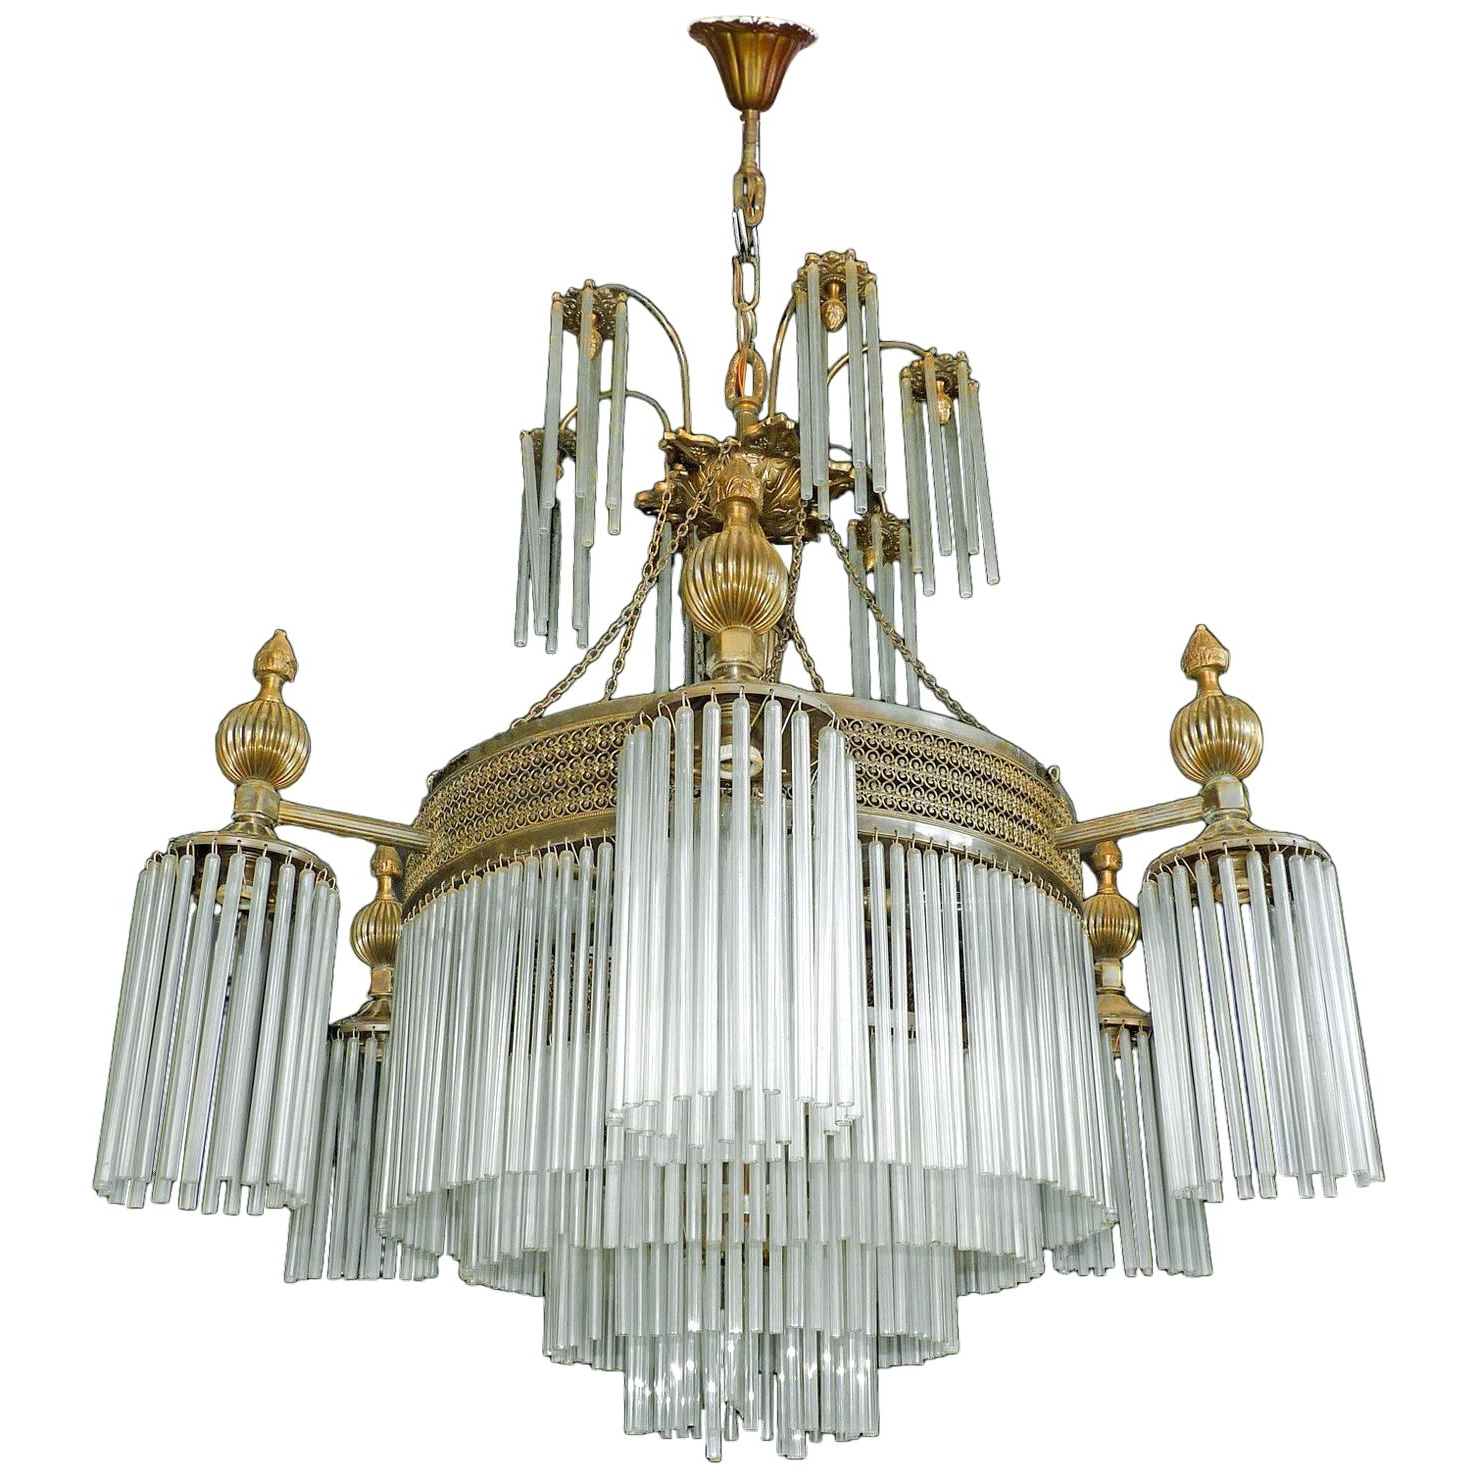 12 Light Chandelier Pertaining To Recent Vroman 12 Light Sputnik Chandeliers (View 18 of 20)